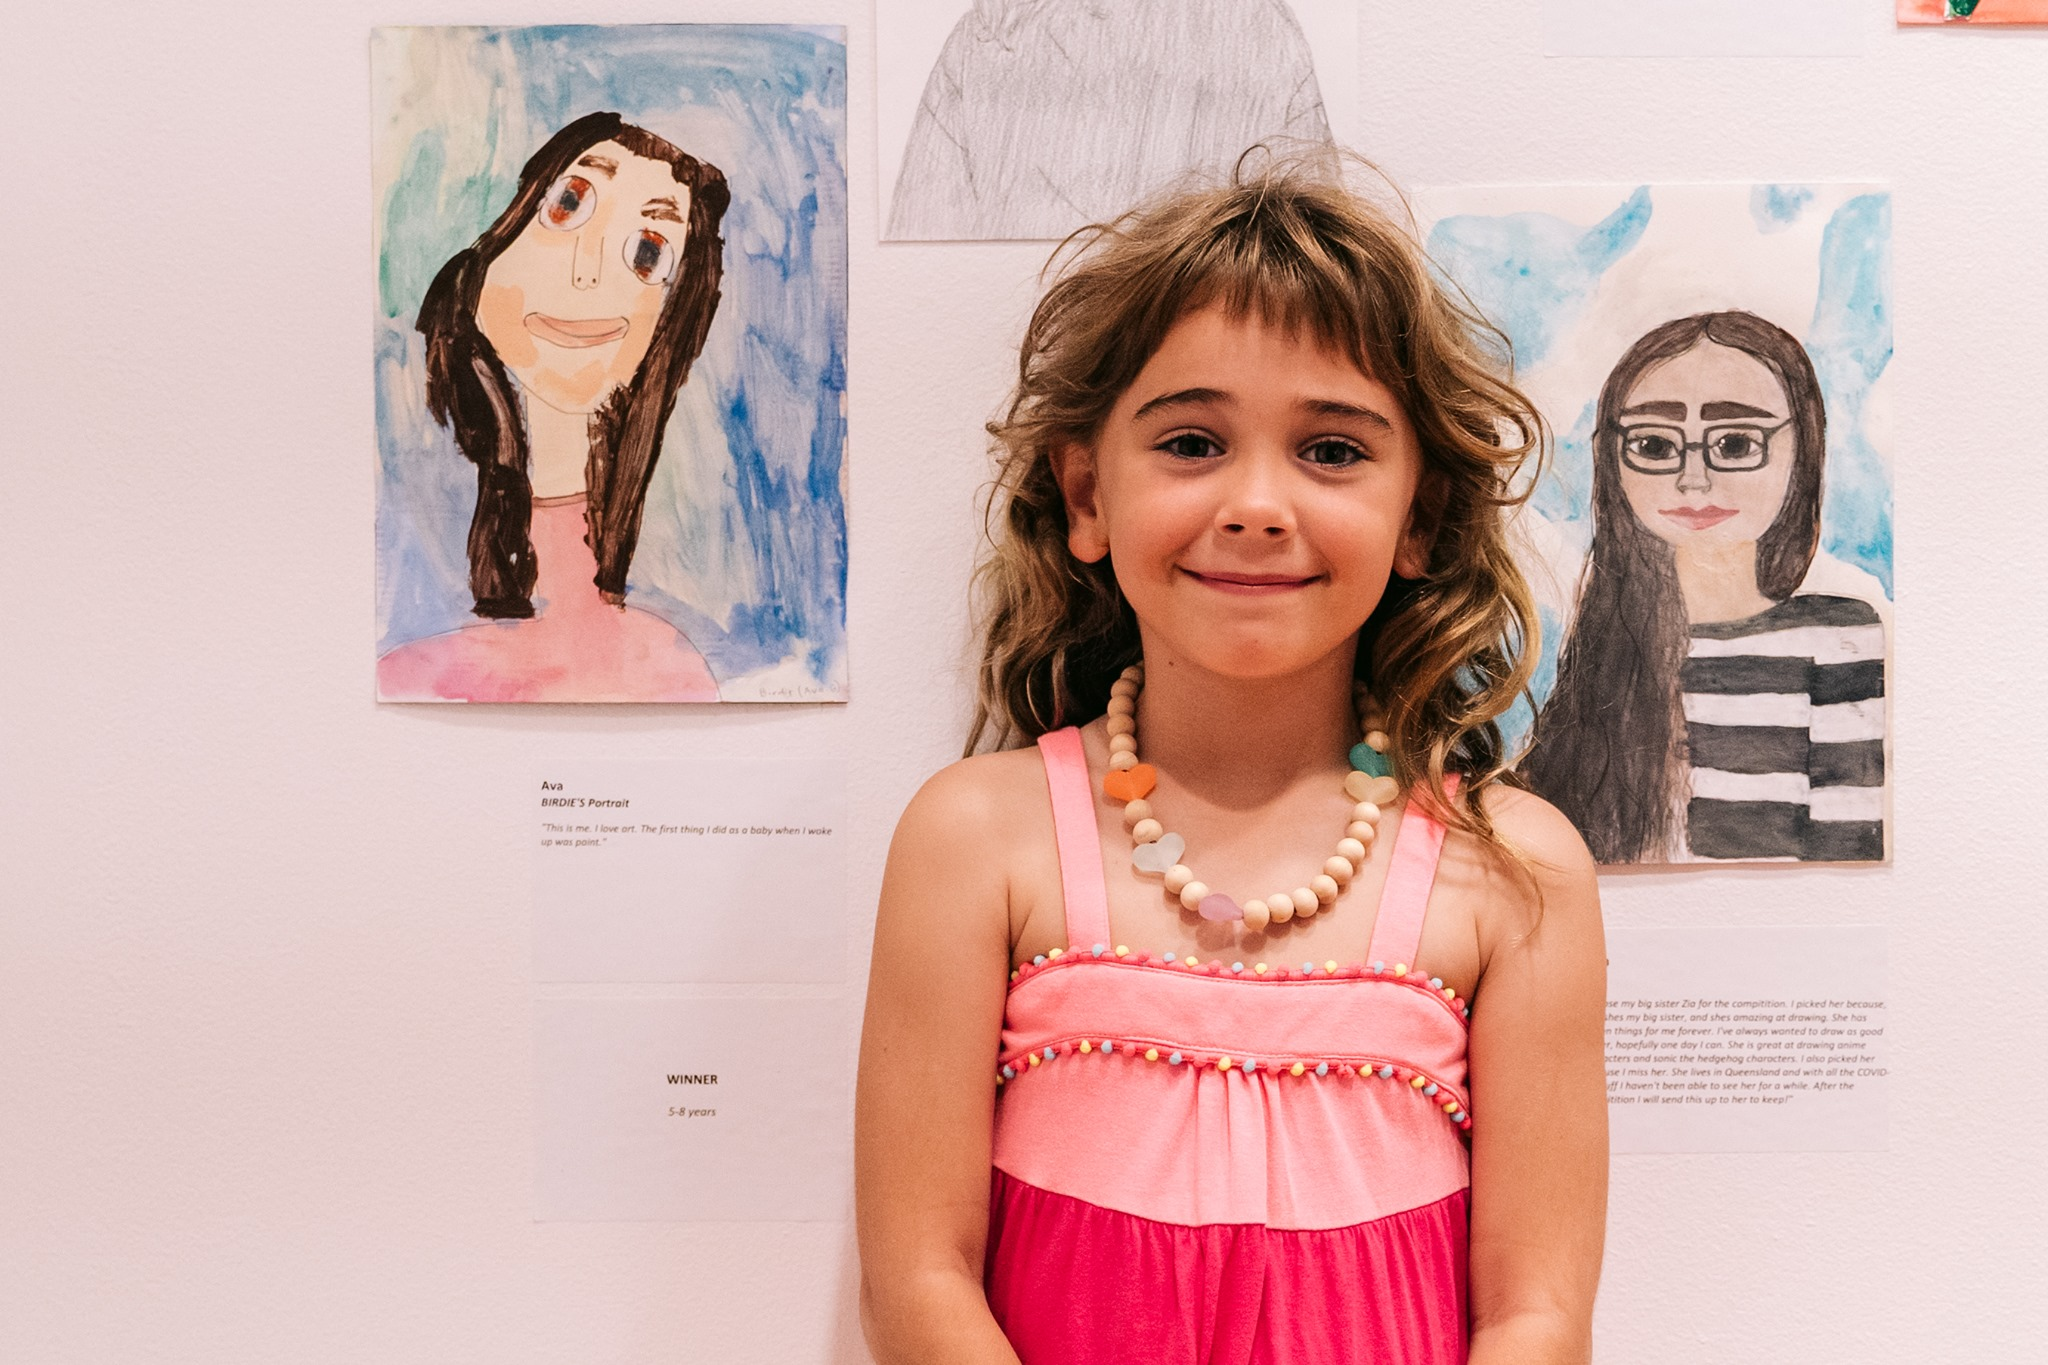 Coffs Harbour's youngest Young Archie winner, Ava Birdie Gallagher. Image courtesy of and the trees photography